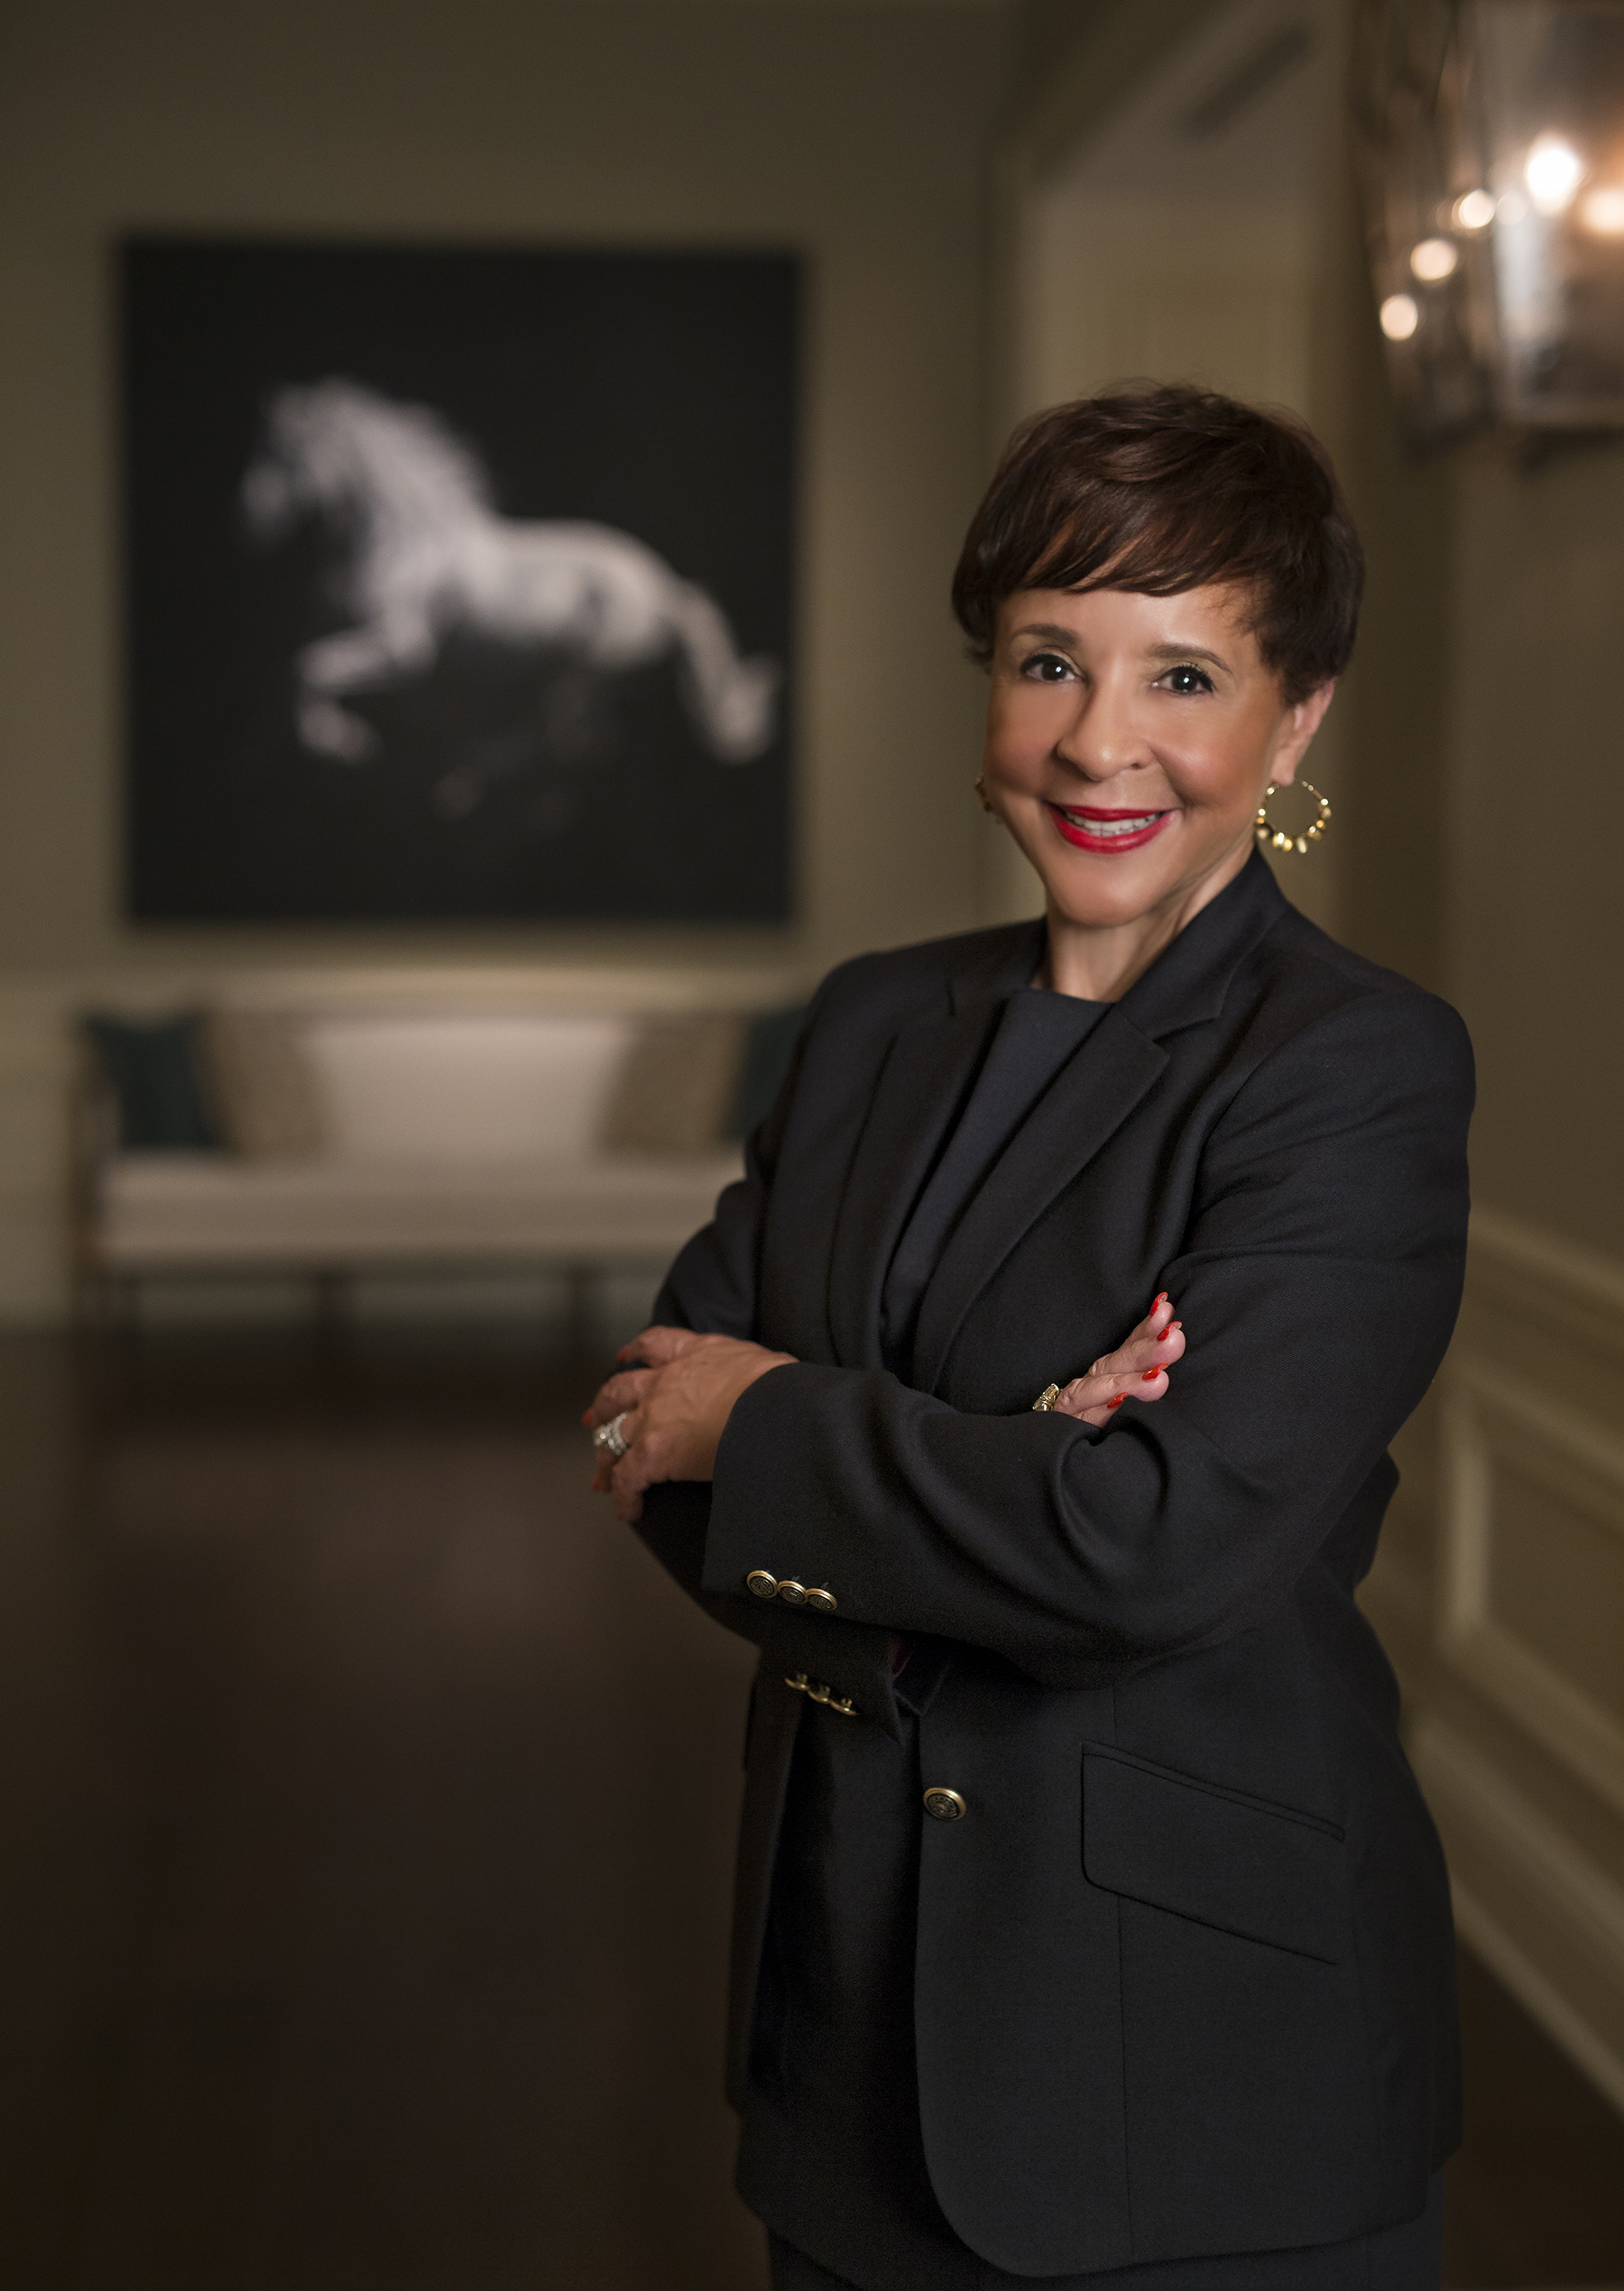 The 1st African American Female Billionaire - Sheila C. Johnson is an entrepreneur and philanthropist whose accomplishments span the arenas of hospitality, sports, TV/film, the arts, education, women's empowerment and community development.As Founder and CEO of Salamander Hotels & Resorts, Ms. Johnson oversees a growing portfolio of luxury properties in Virginia, Florida and South Carolina. The equestrian-inspired Salamander Resort & Spa in Middleburg, Virginia, has been recognized as one of the country's finest luxury properties and has been awarded the esteemed Forbes Five Star rating… Read her full bio.